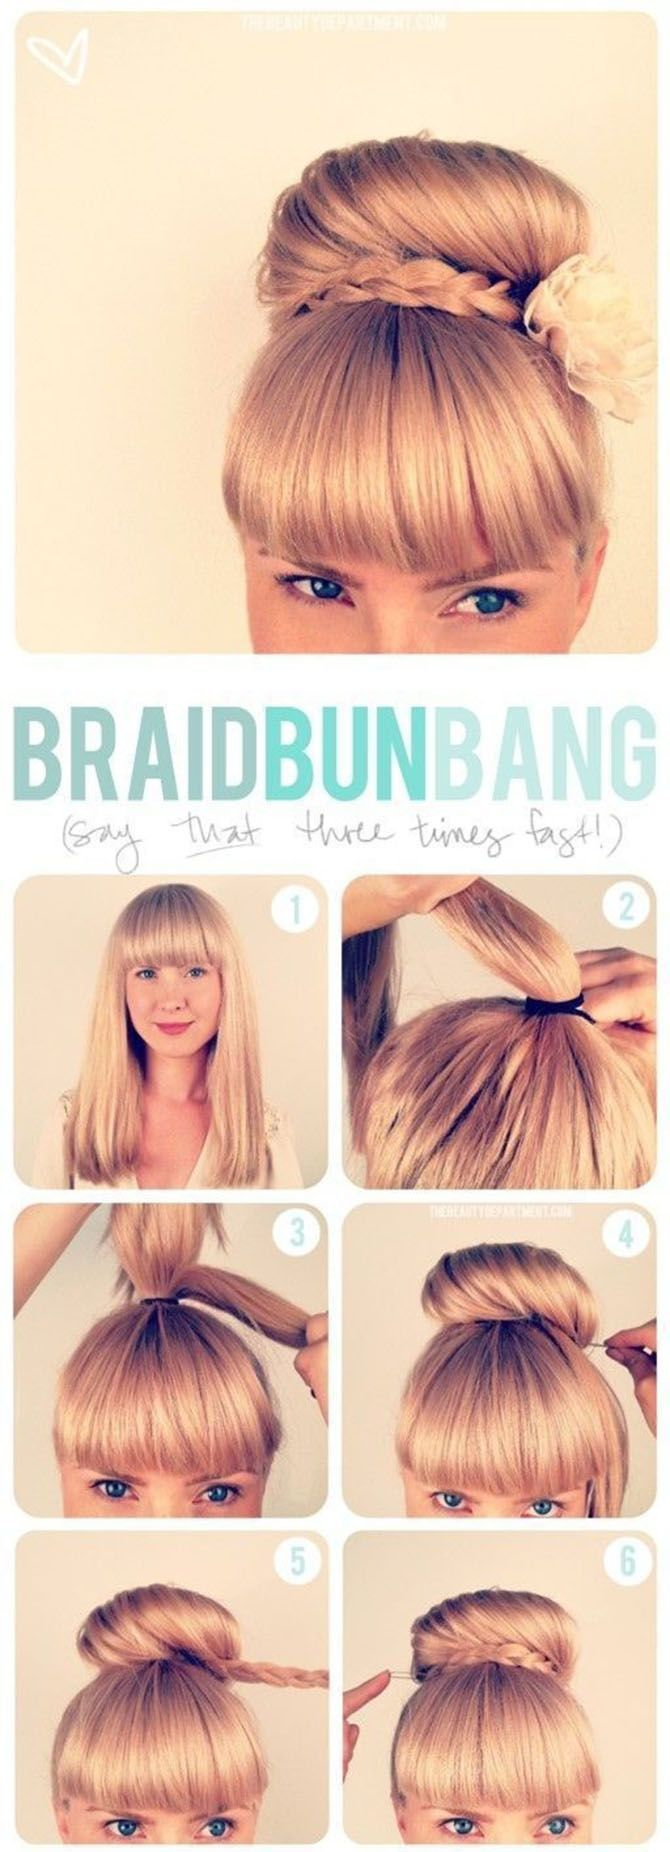 Creative Hairstyles That You Can Easily Do at Home (27 Photos) | StingFeed - Part 23